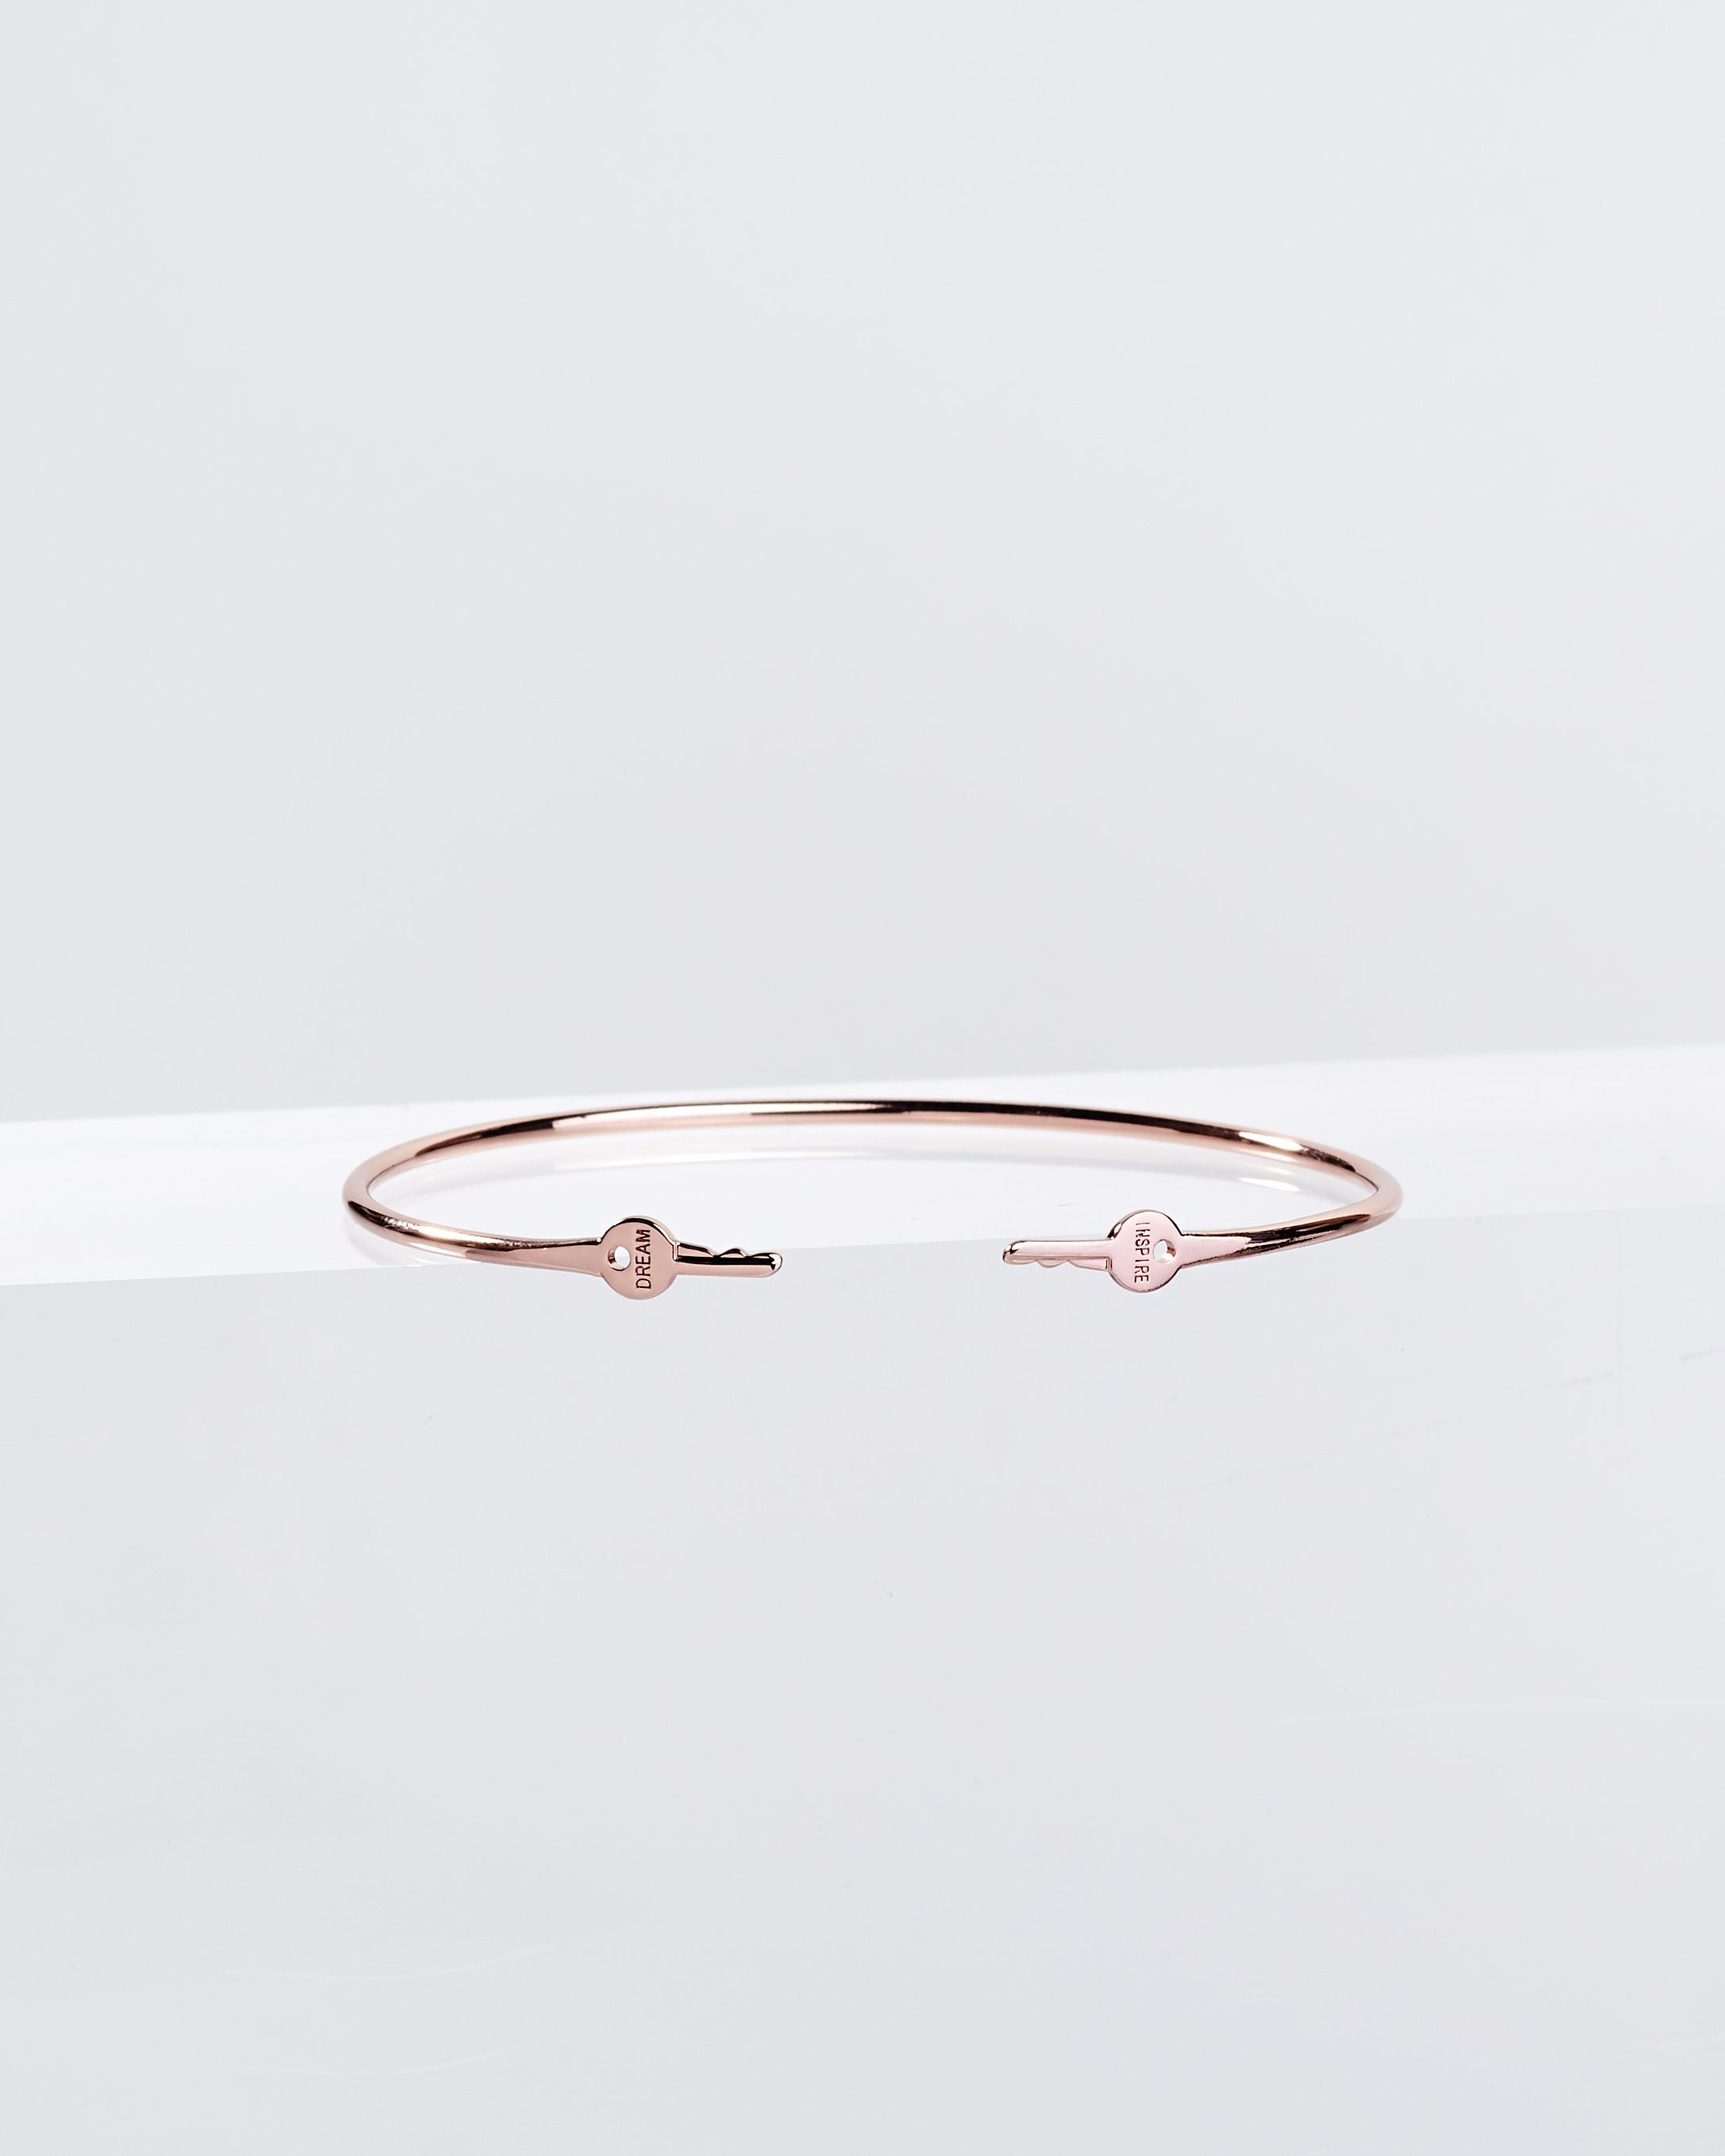 Rose Gold Wrapped Mini Key Bangle Bracelets The Giving Keys DREAM + INSPIRE Rose Gold